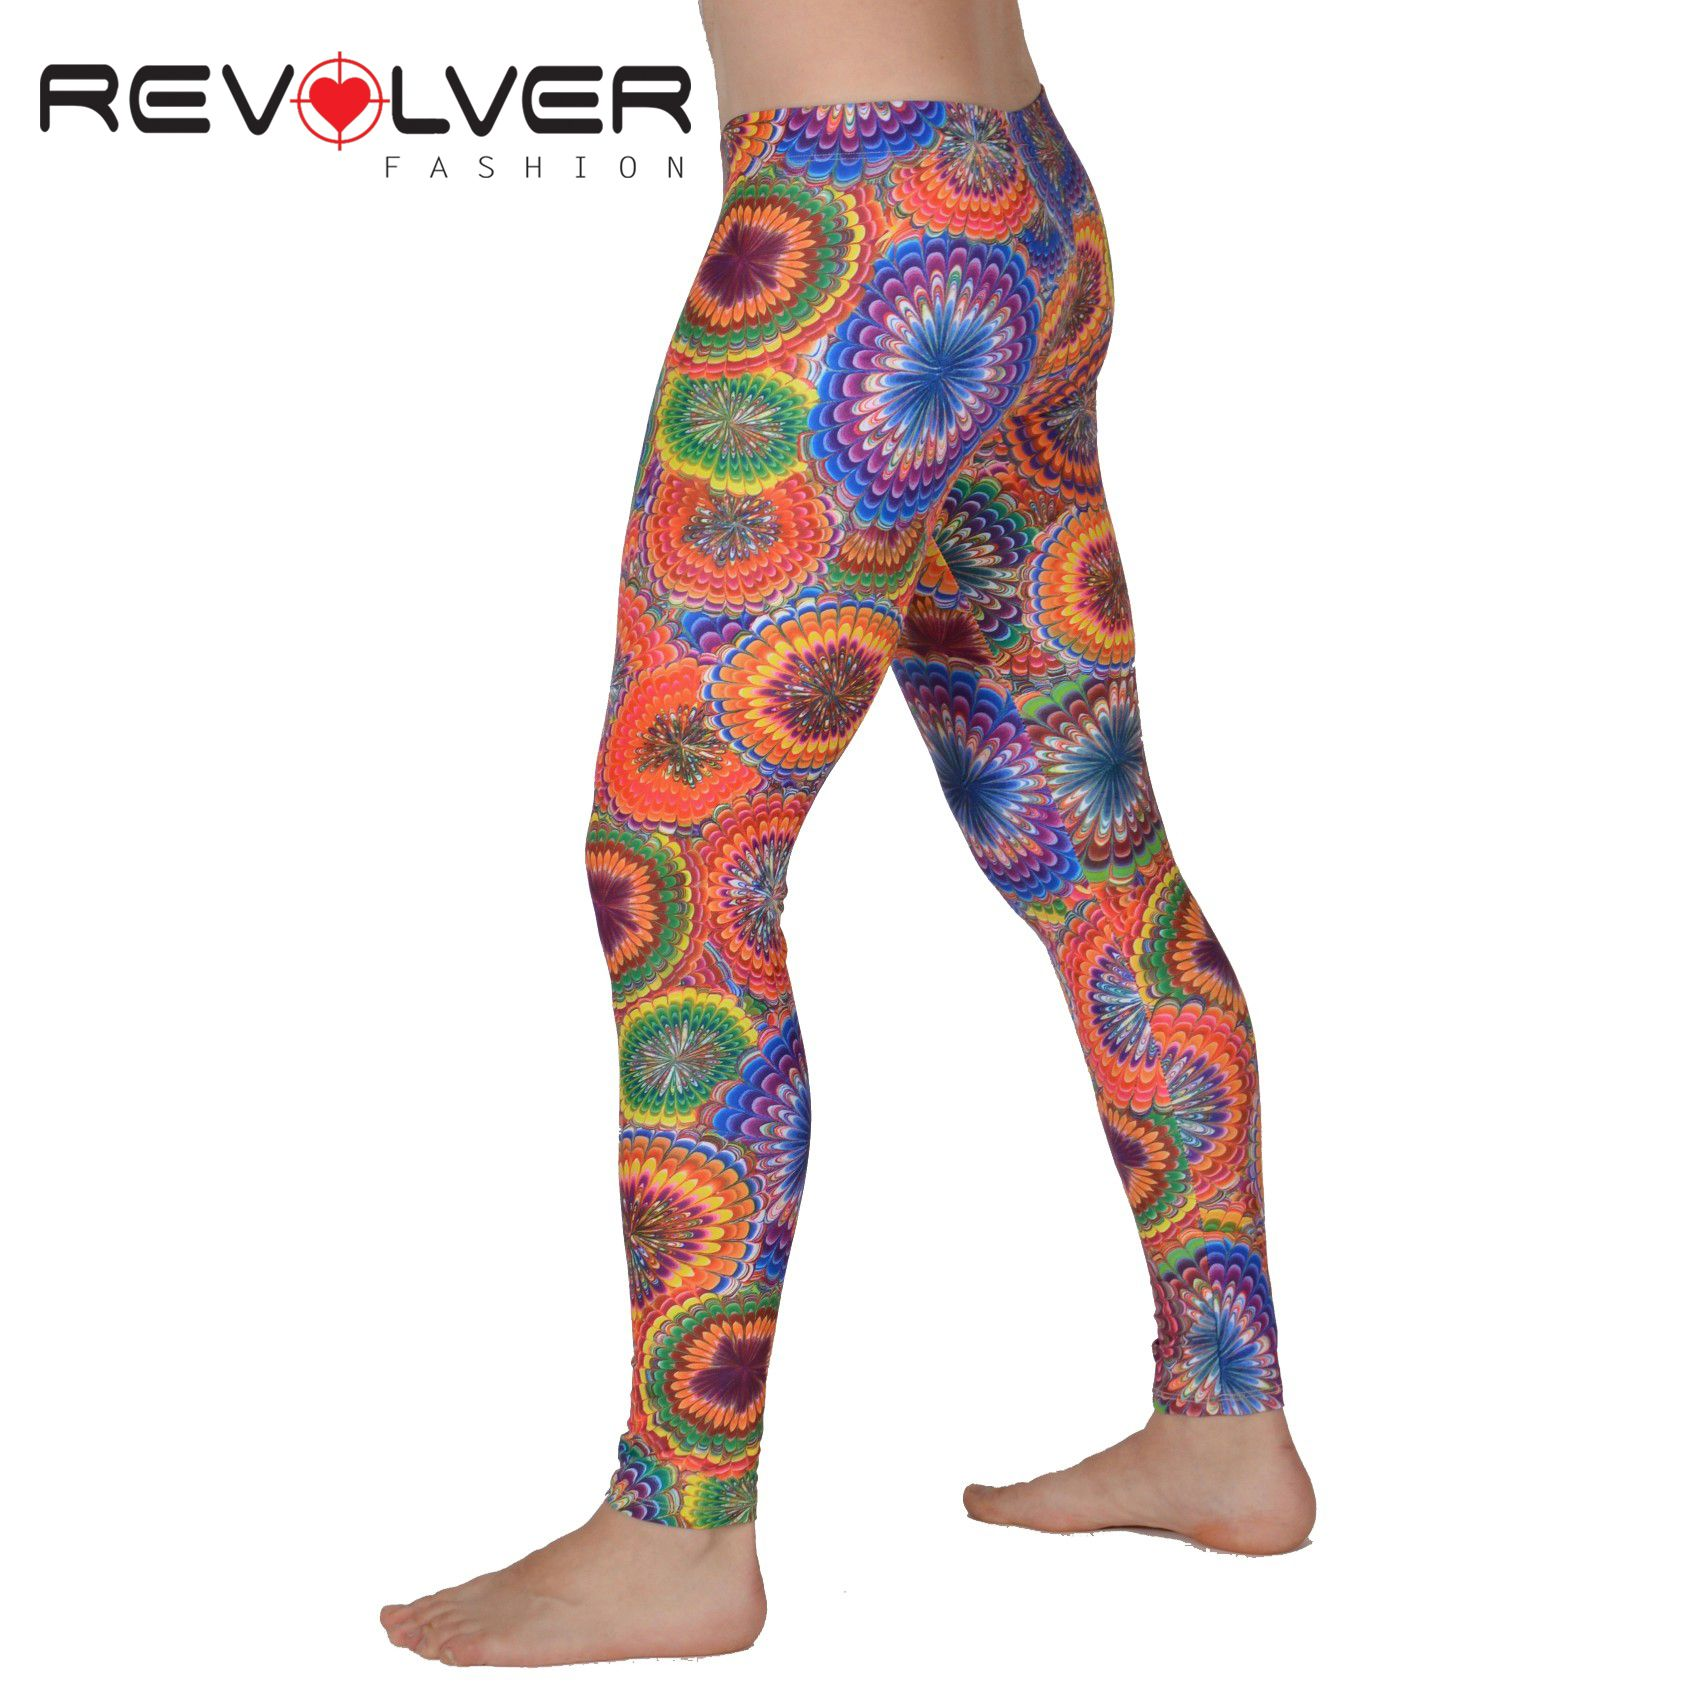 Ayahuasca Vine Men's Legging or Flare Pants // Easy Hippie Costume // 70's Psychedelic Pants // fdHF86i2Y